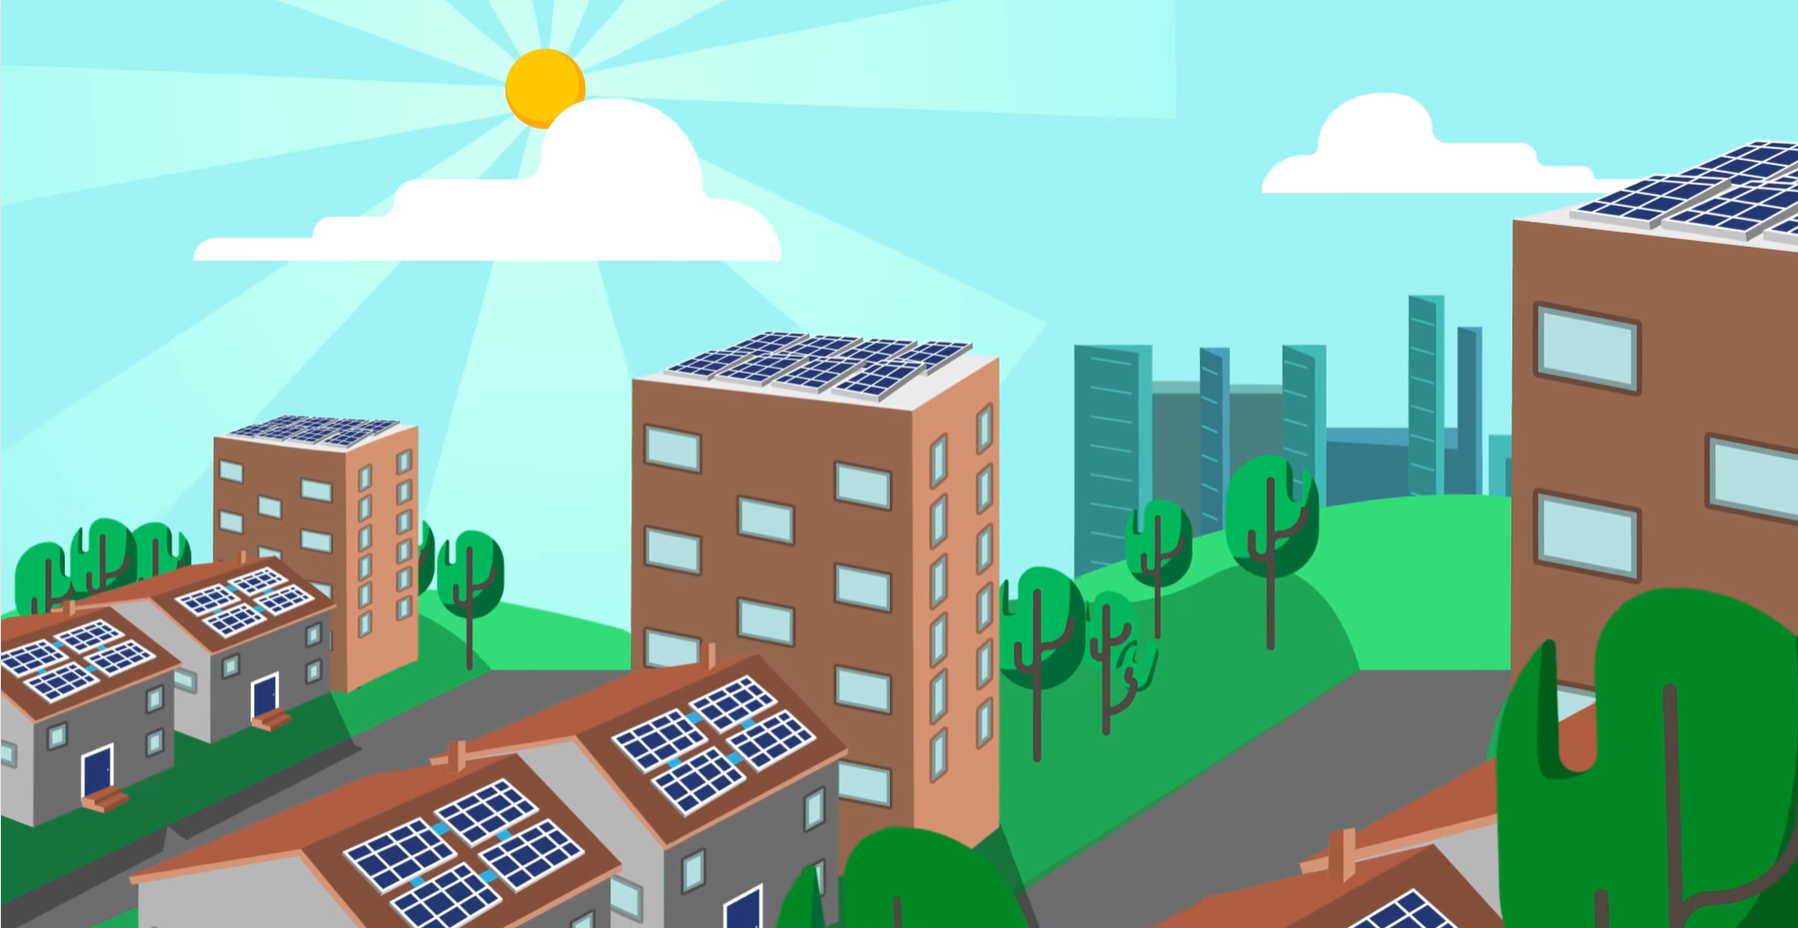 A cartoon showing all buildings having solar